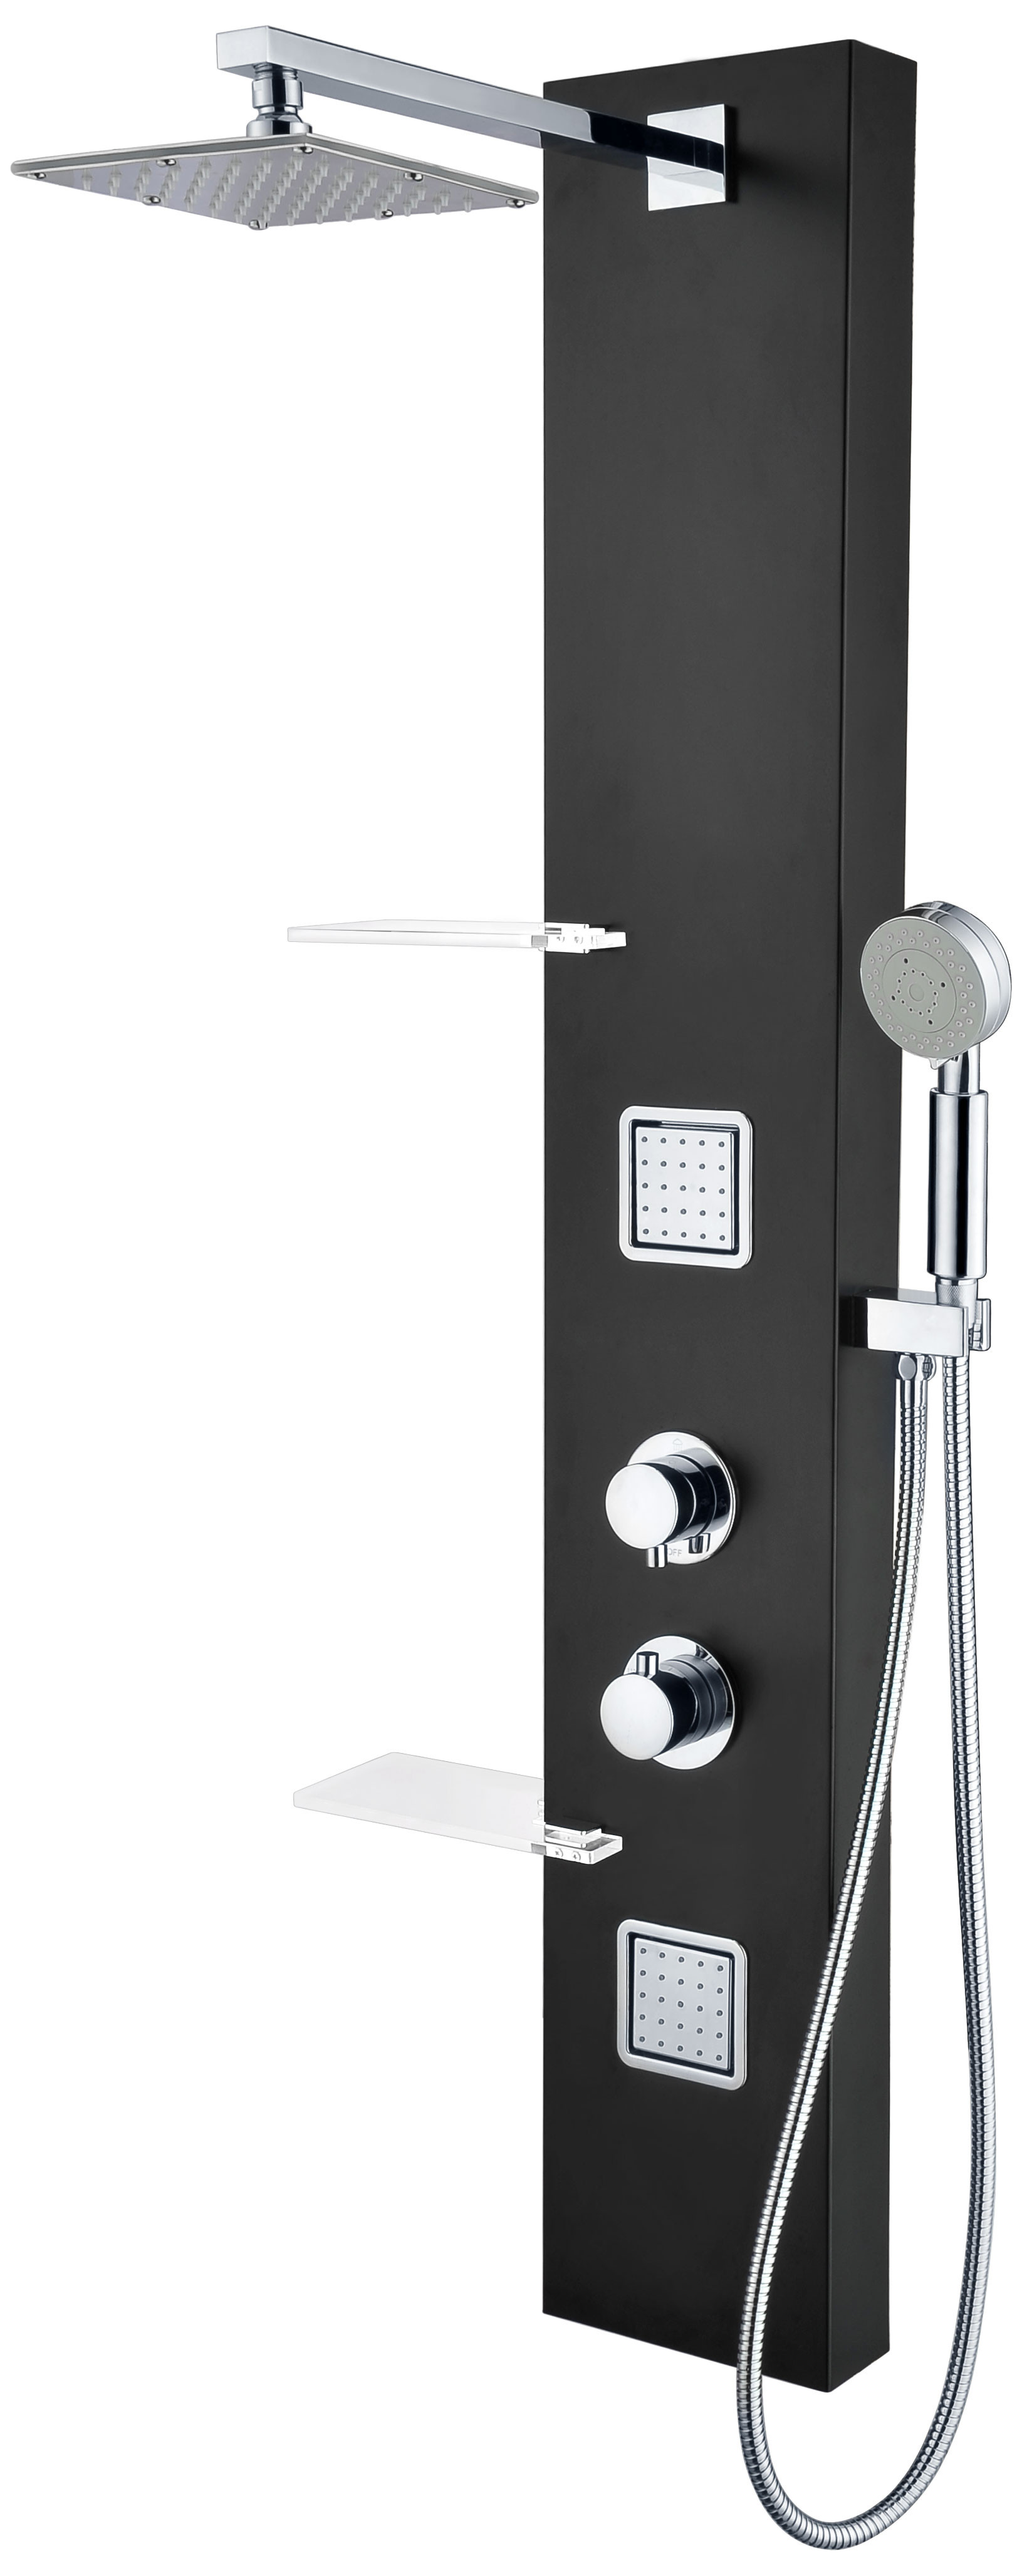 ANZZI SP-AZ025 Ronin Shower Panel With Rain Shower & Spray Wand In Black